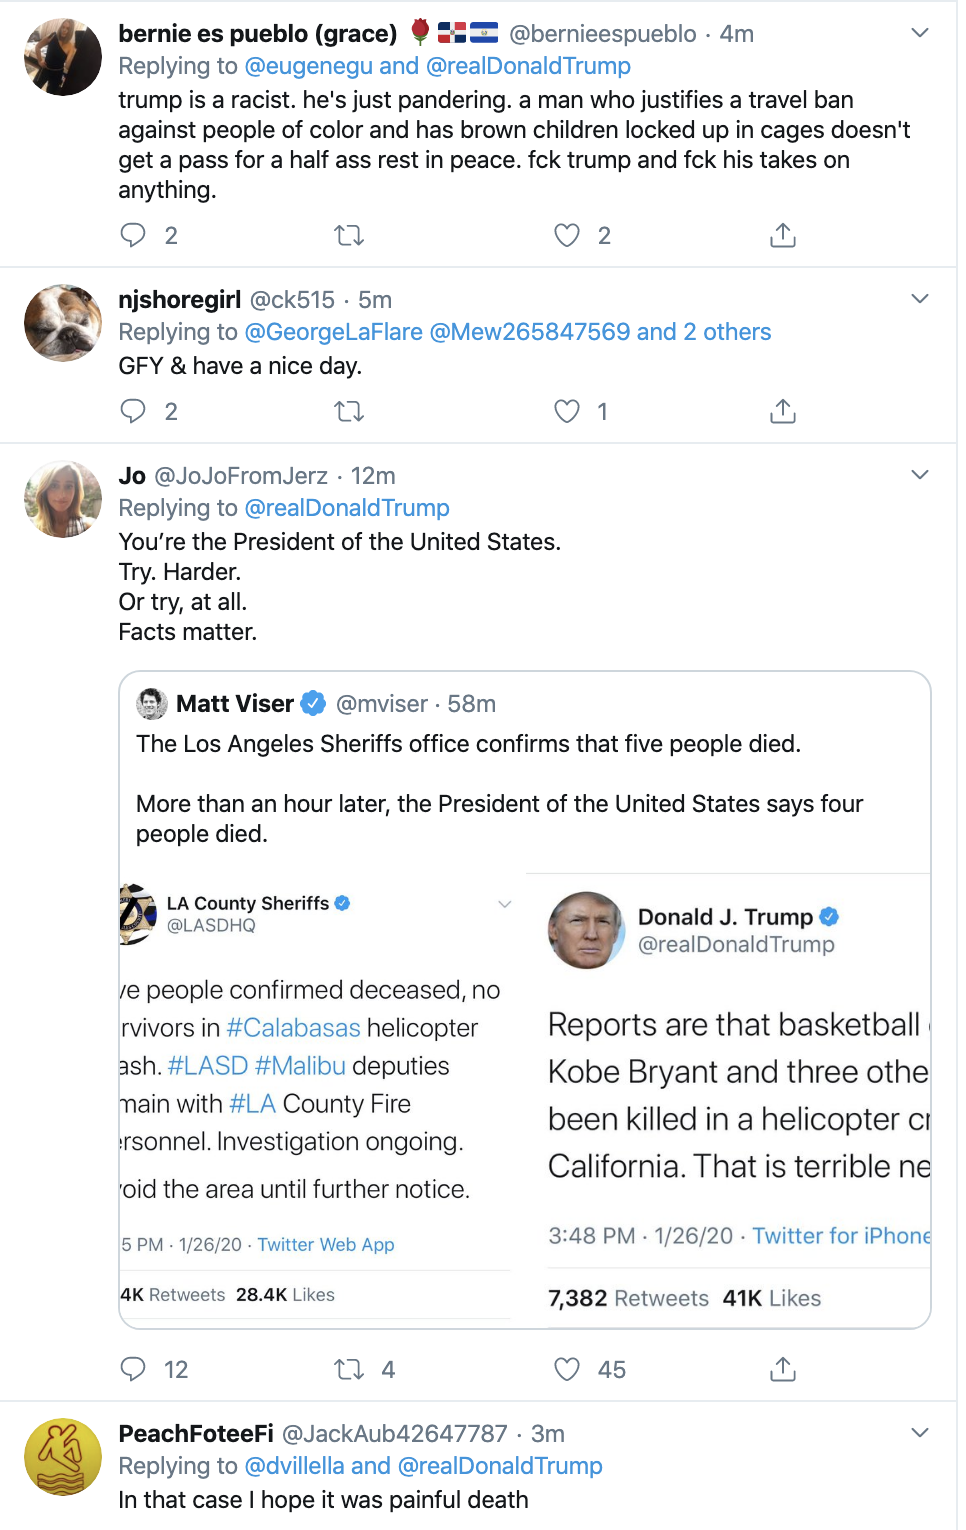 Screen-Shot-2020-01-26-at-4.04.17-PM Trump's Flubbed Tweet About Kobe Bryant Goes Horribly Wrong Featured Military Sports Top Stories War